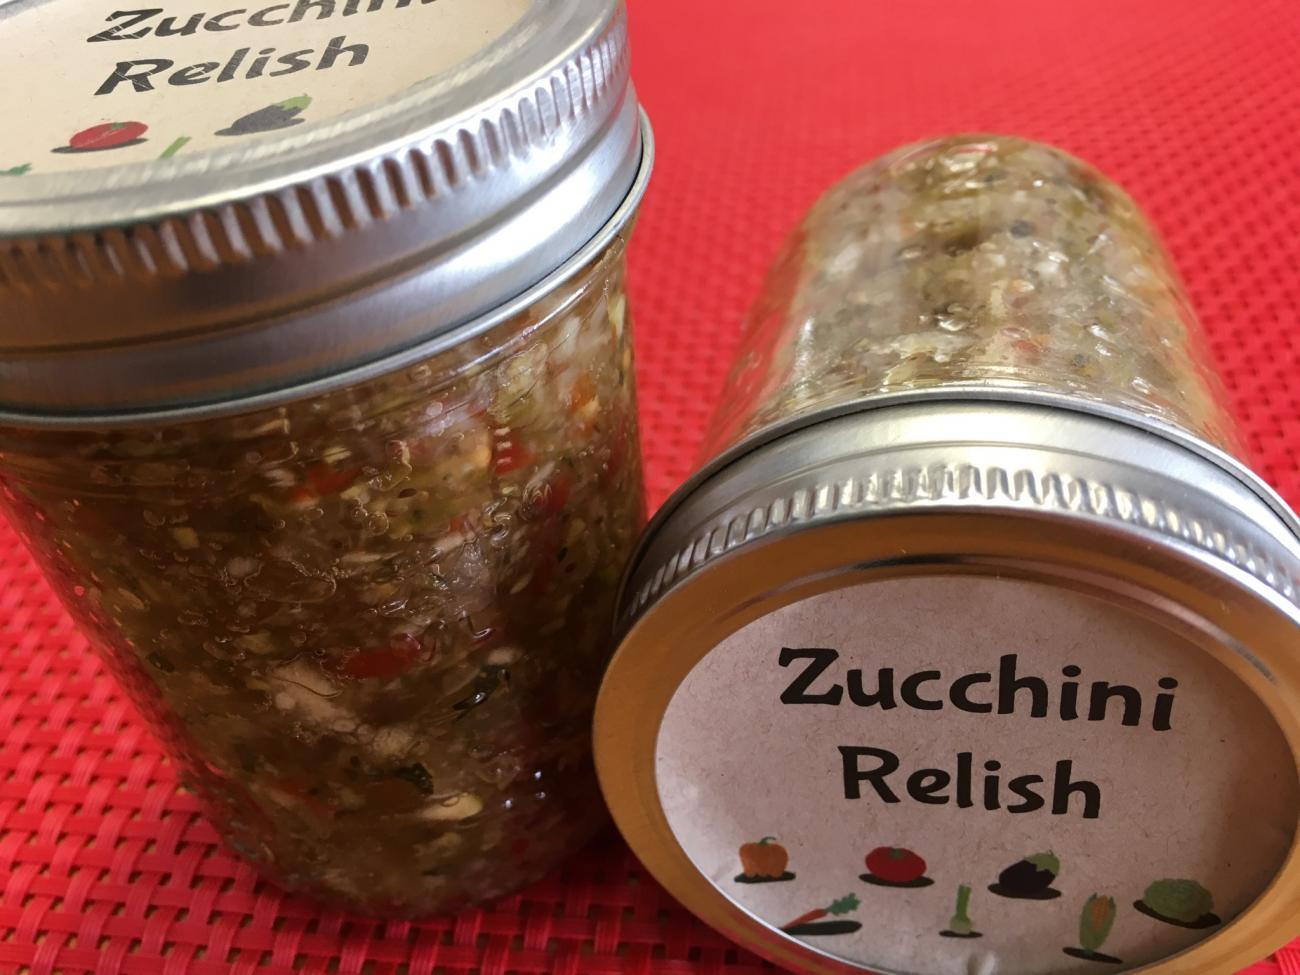 Recipe for Zucchini Relish